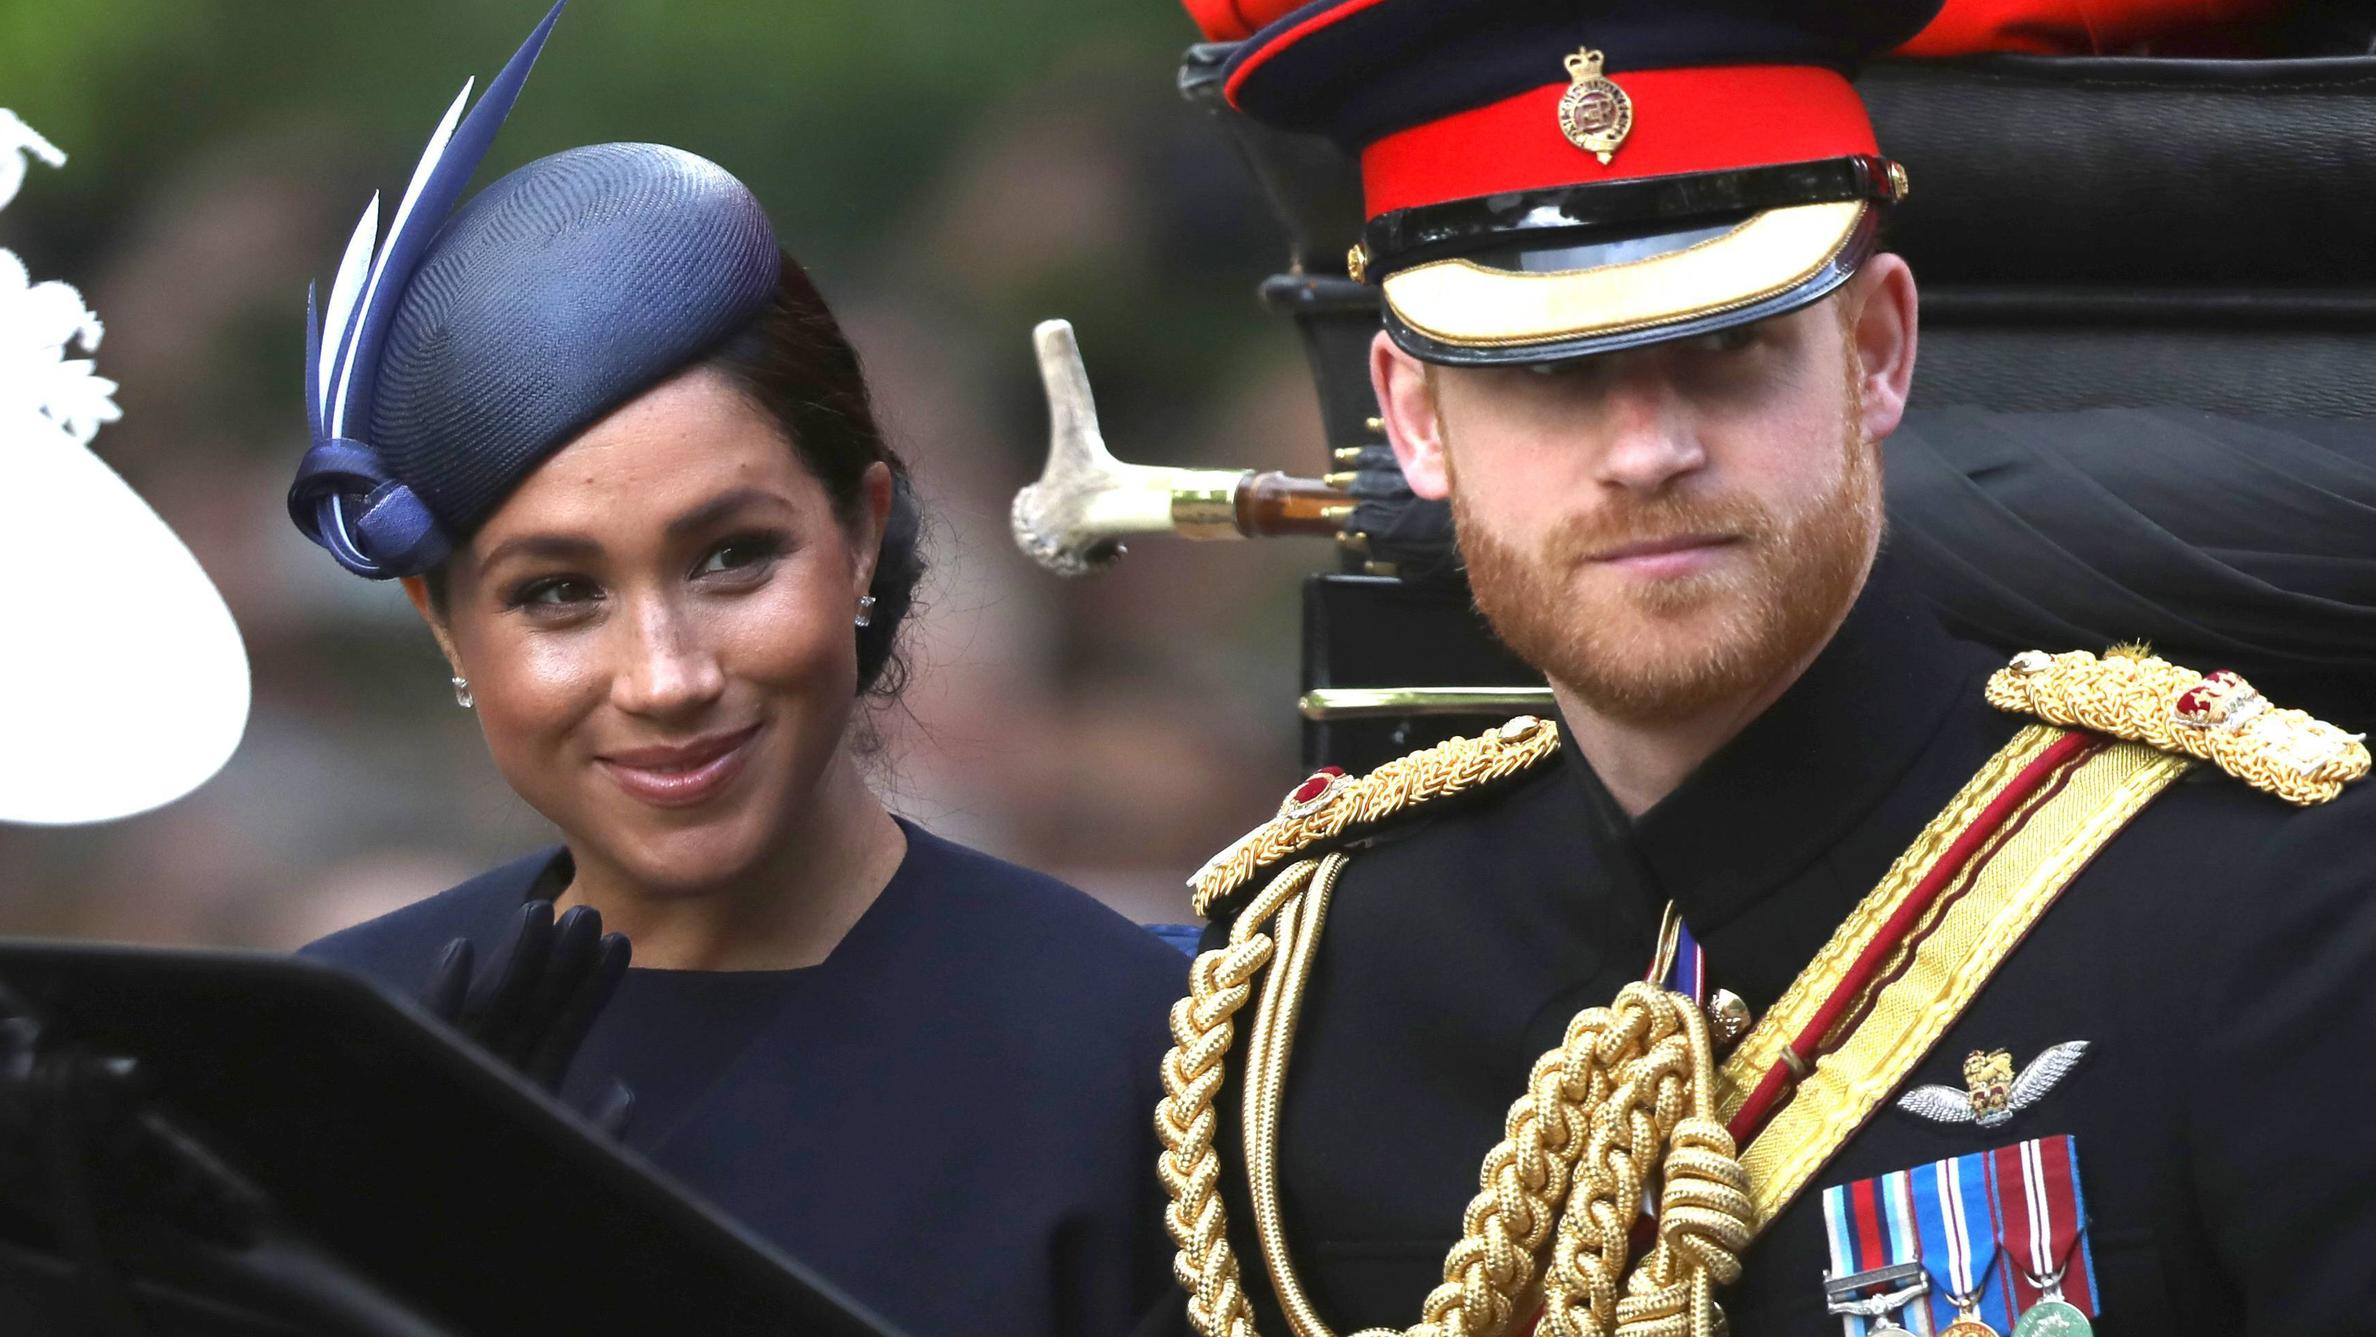 Meghan Markle (Duchess of Sussex), Prince Harry (Duke of Sussex), in a carriage on their way to Horse Guards Parade at the Trooping of the Colour 2019. Trooping the Colour marks the Queens official birthday and 1,400 soldiers, 200 horse and 400 music